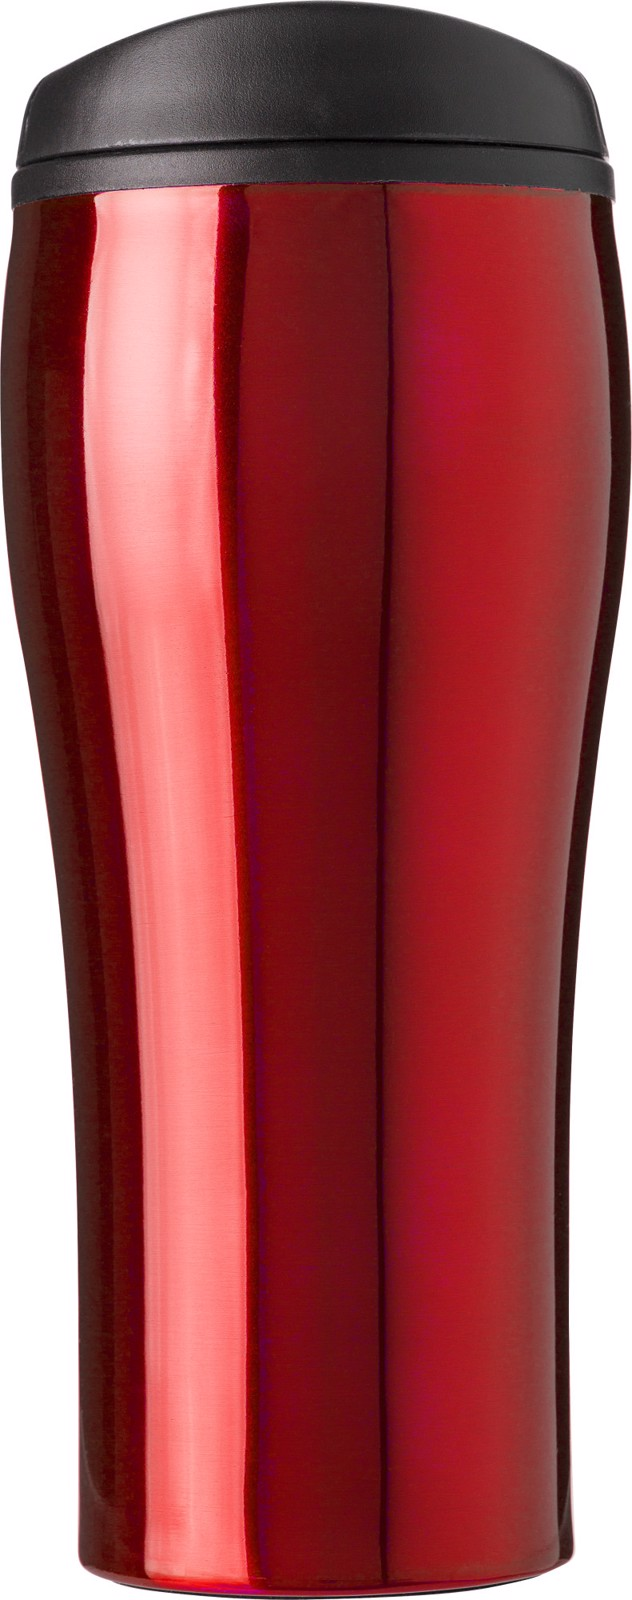 PP and stainless steel mug - Red